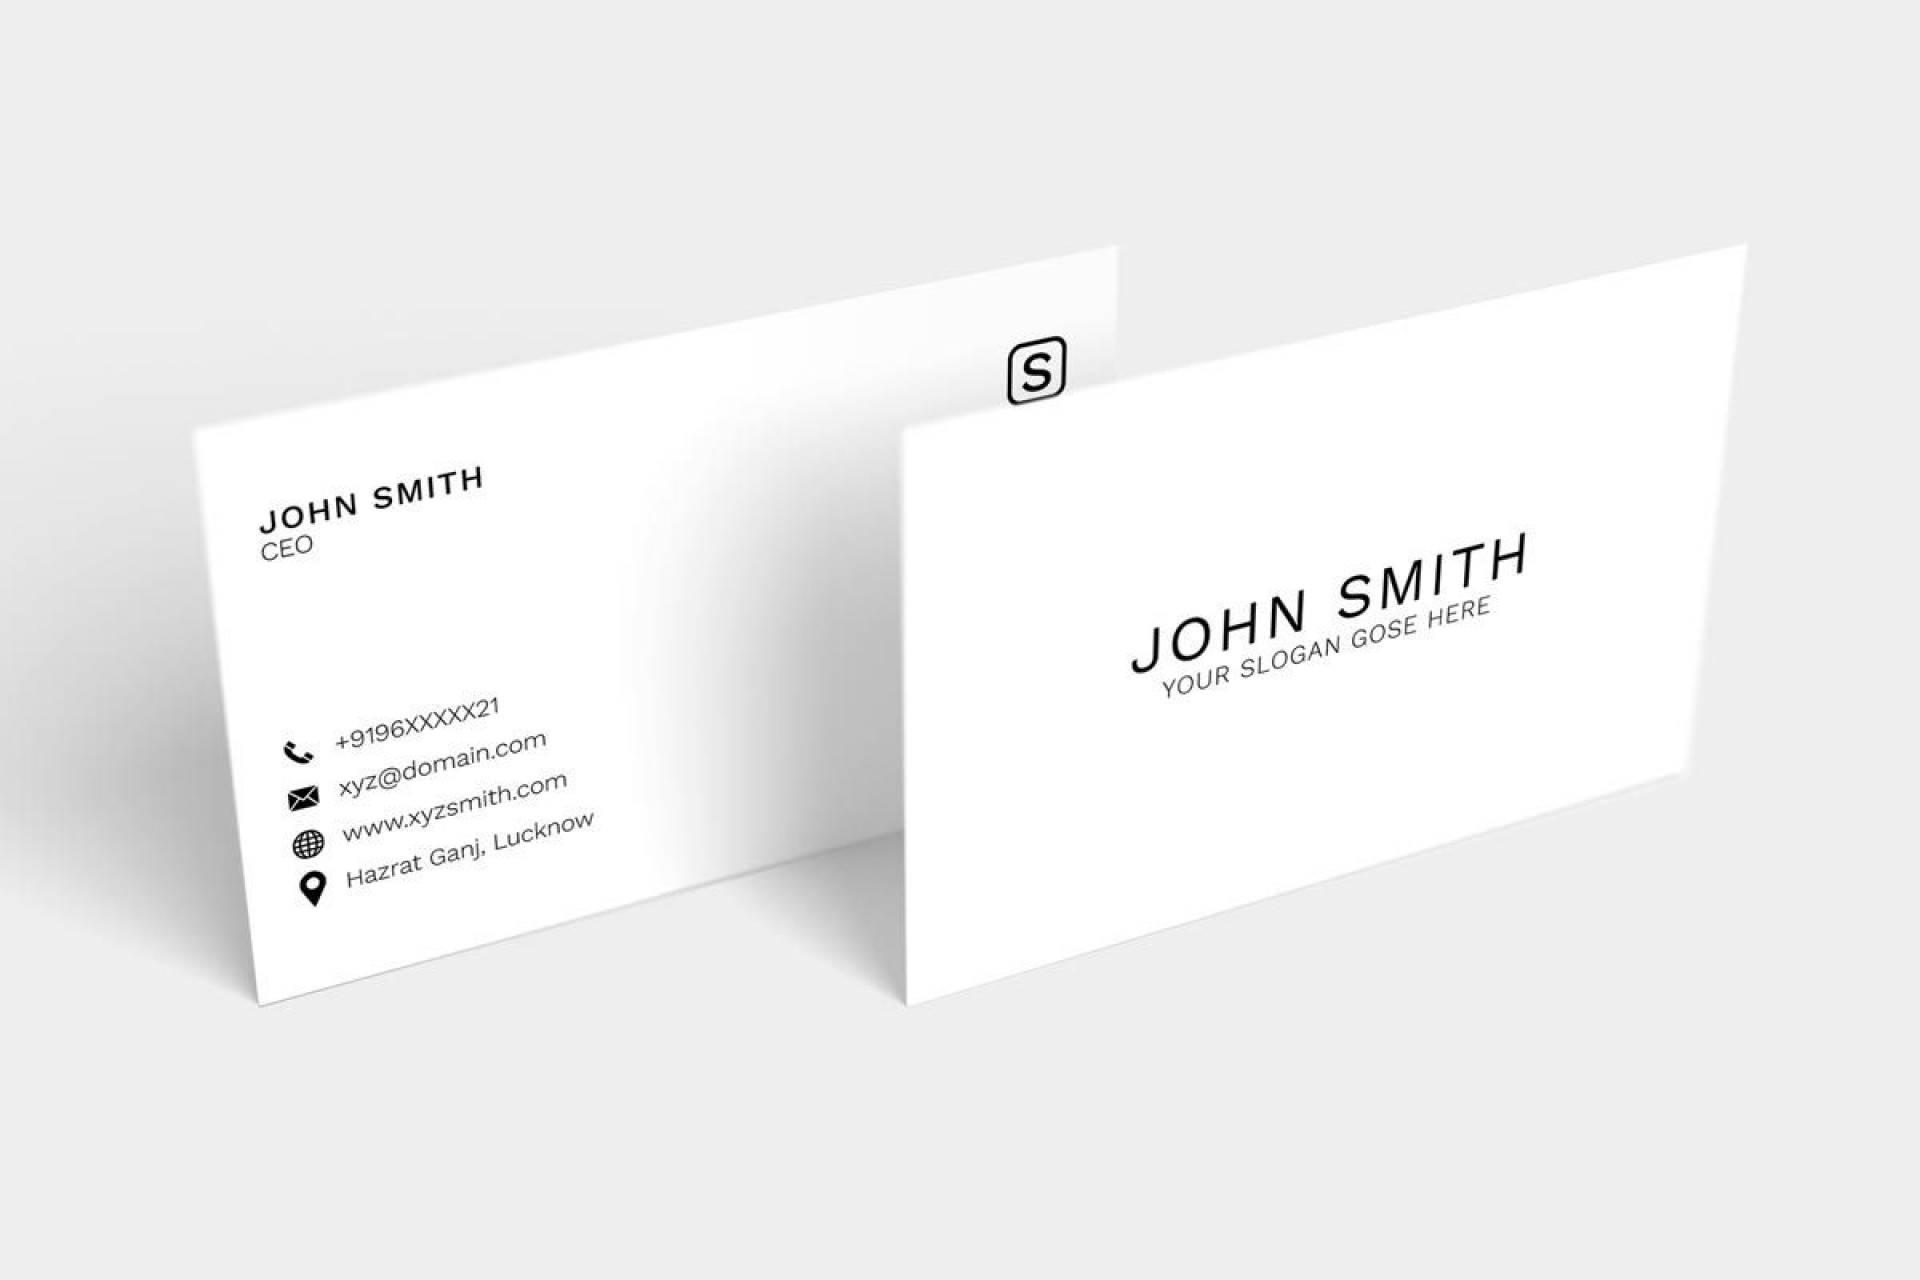 010 Stupendou Minimal Busines Card Template Psd High Resolution  Simple Visiting Design In Photoshop File Free Download1920